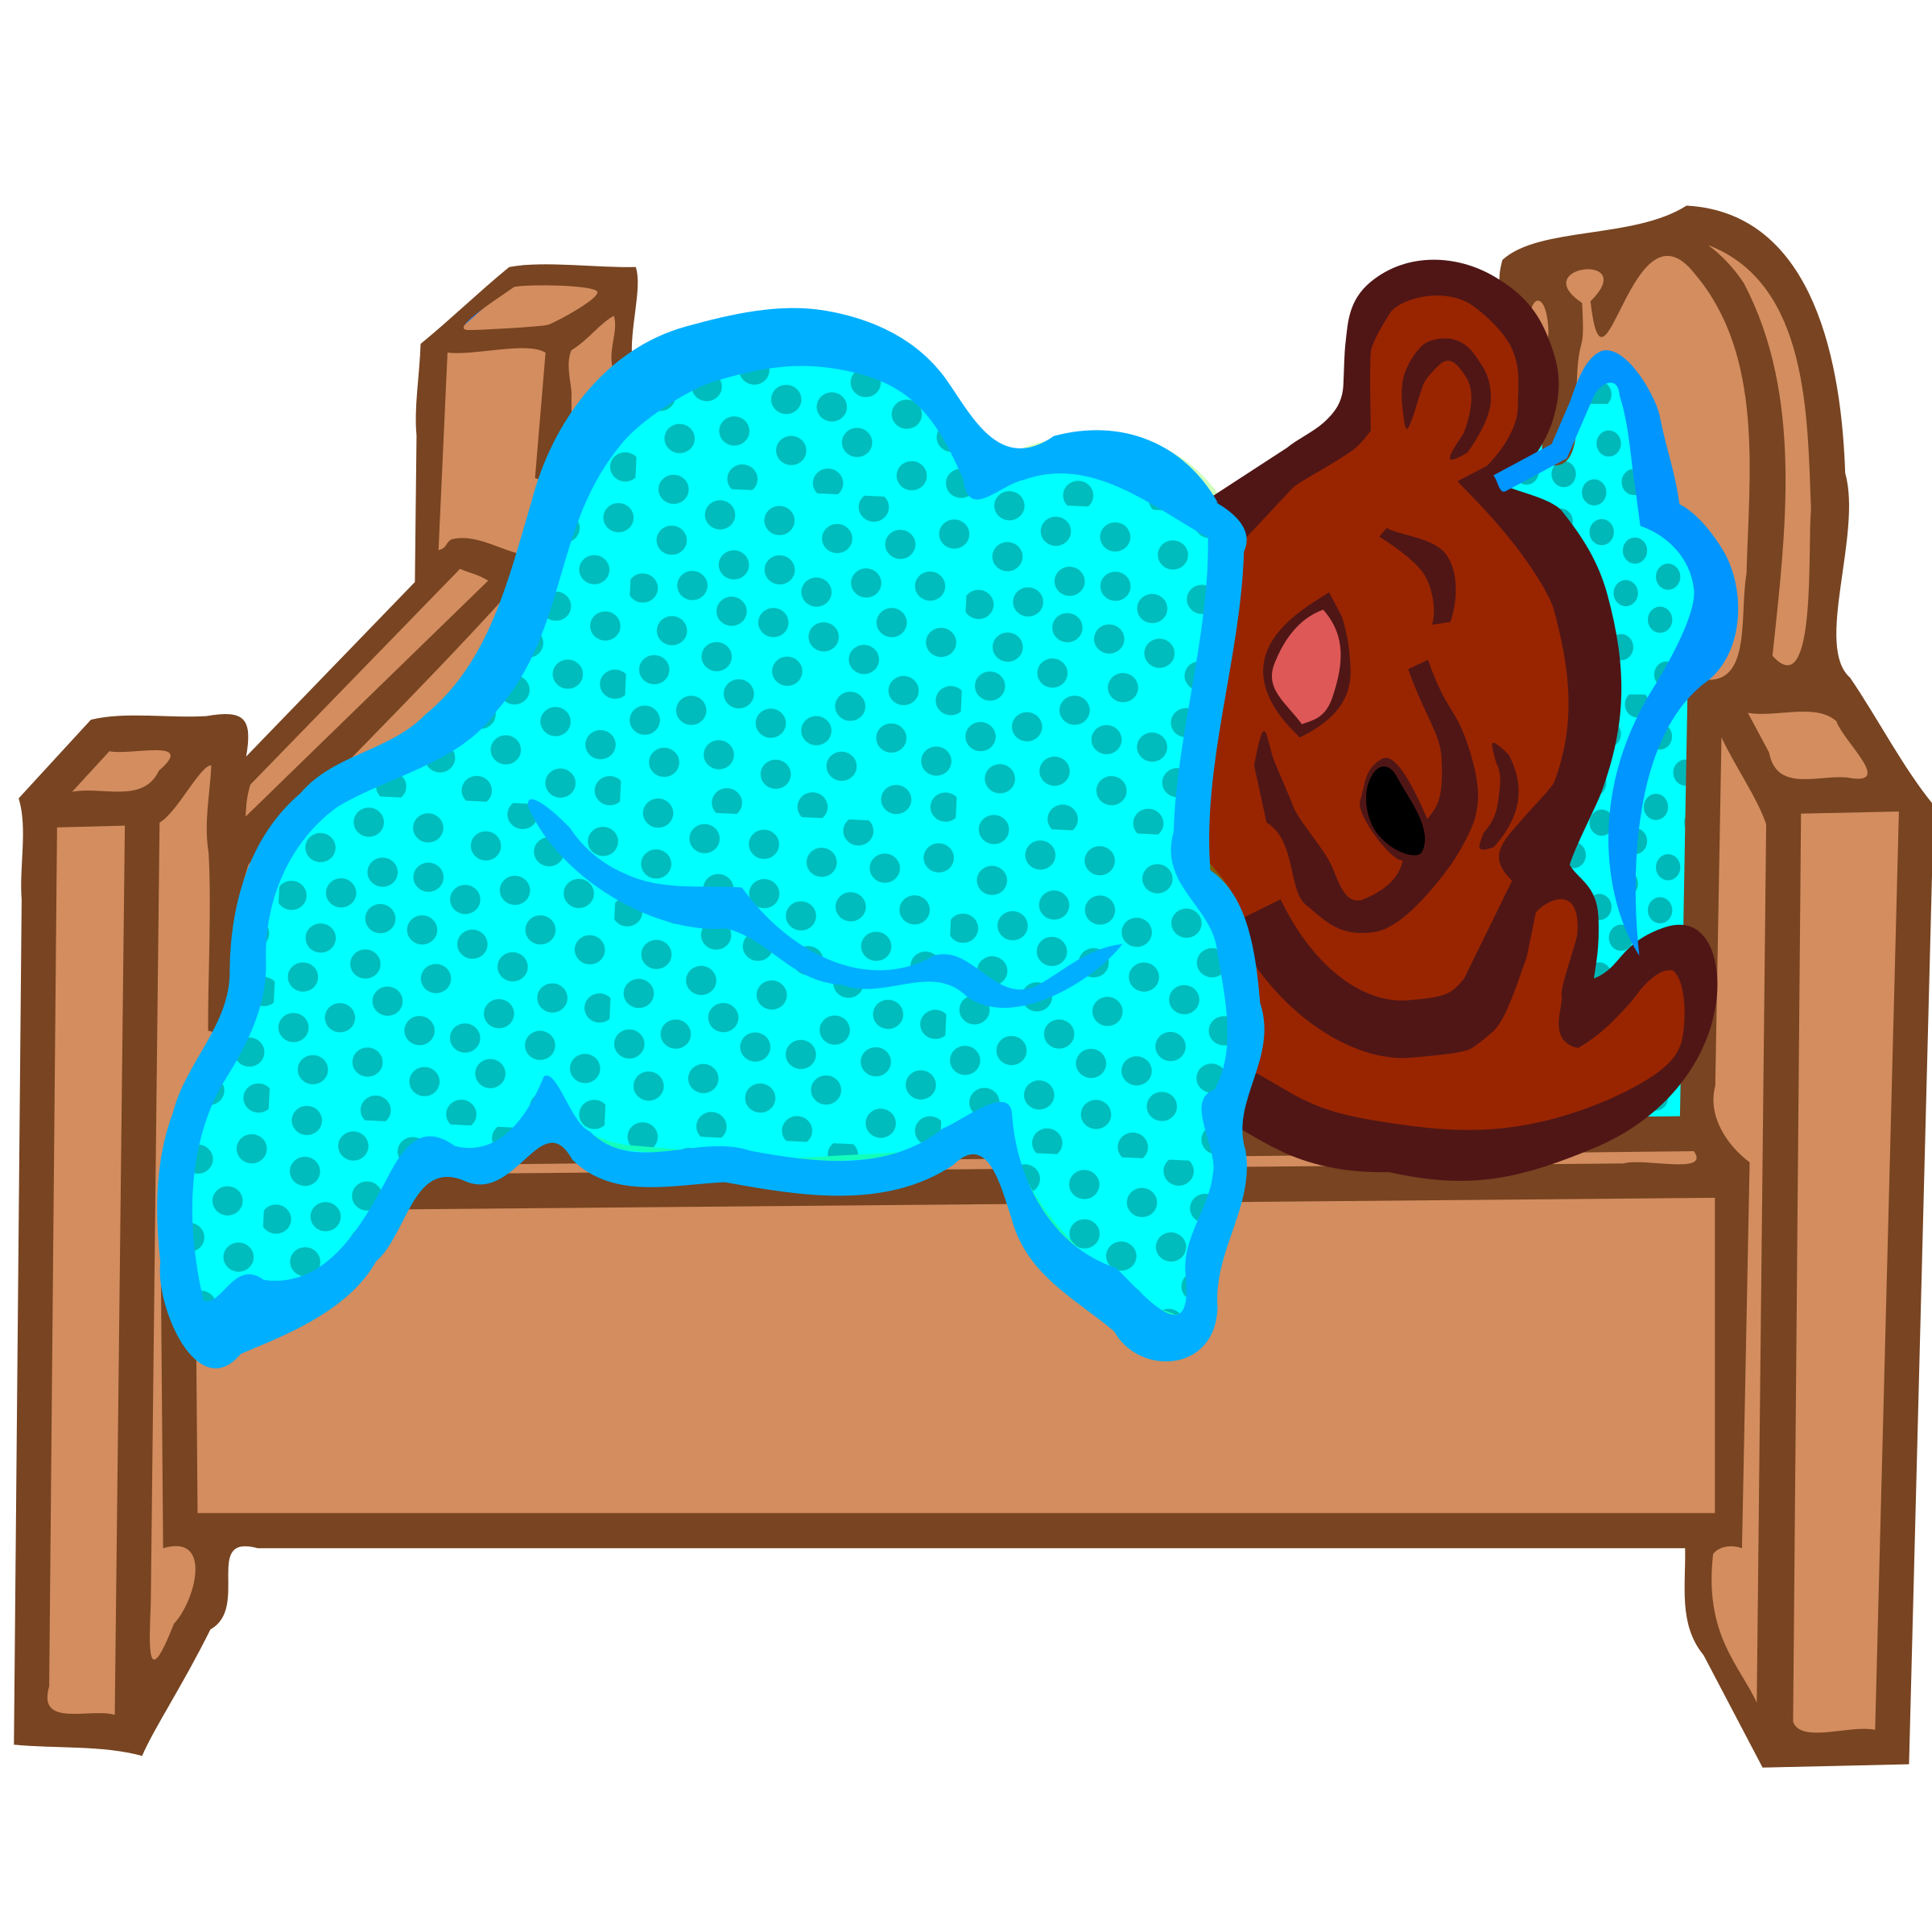 clipart freeuse Coloured big image png. Hibernating bear clipart